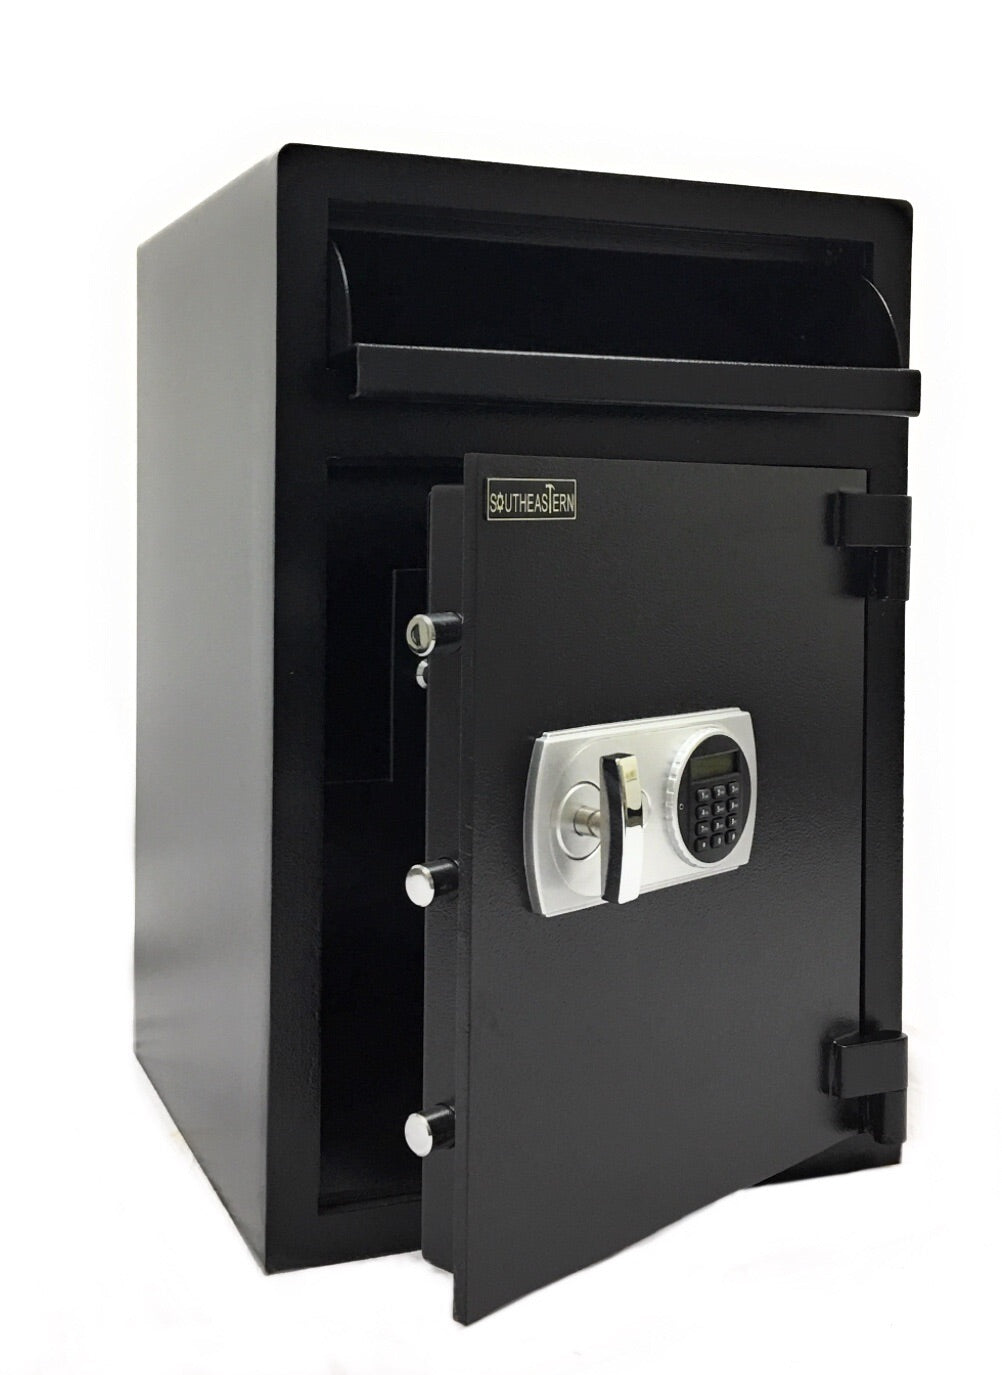 SOUTHEASTERN Drop safe with Quick digital lock including by passing keys and keyed inside compartment